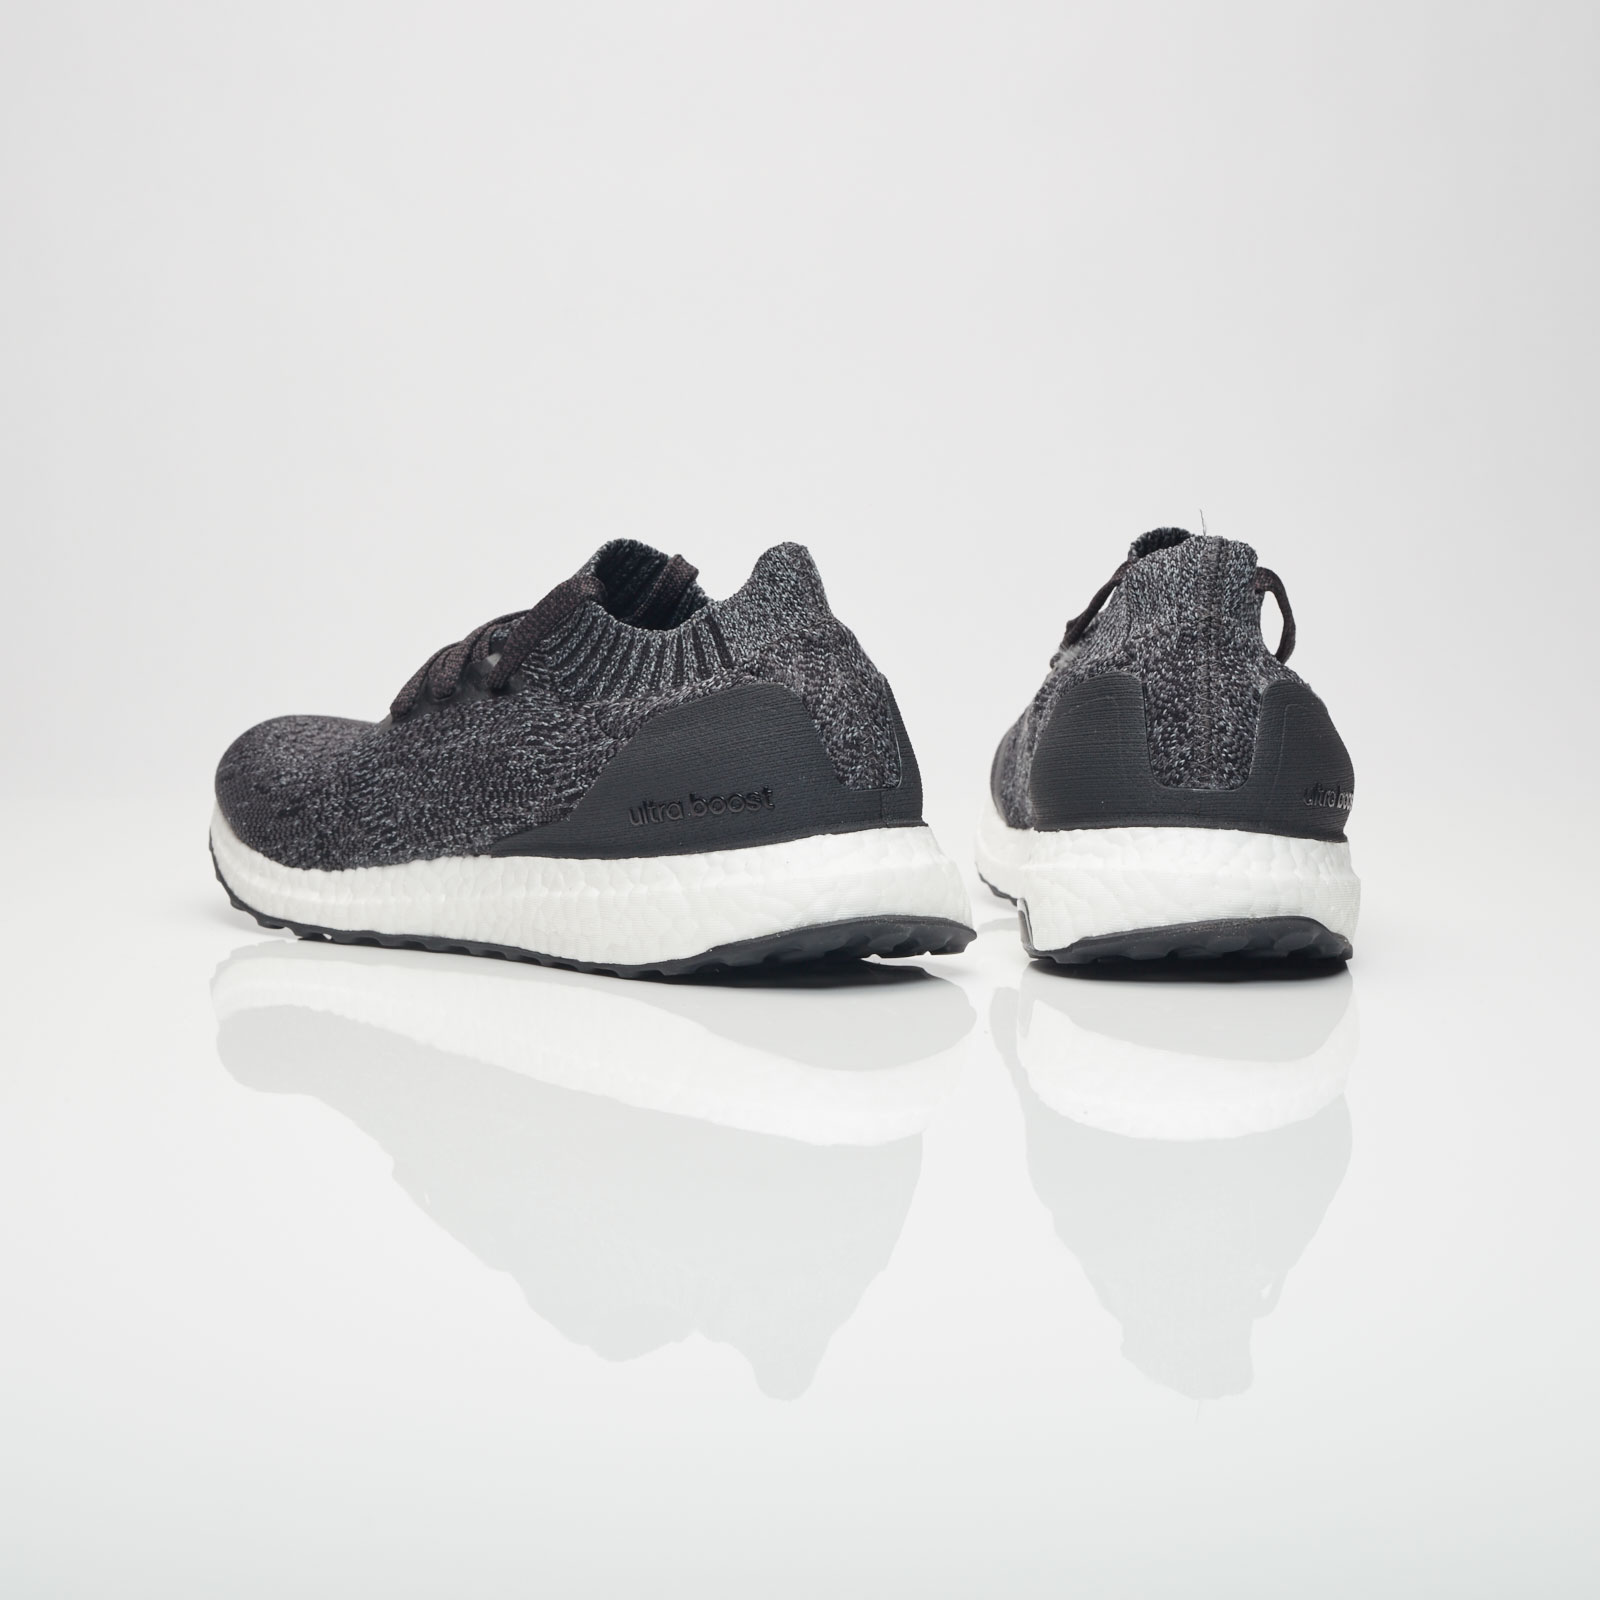 info for f5fb6 b9533 adidas UltraBOOST Uncaged - By2551 - Sneakersnstuff ...